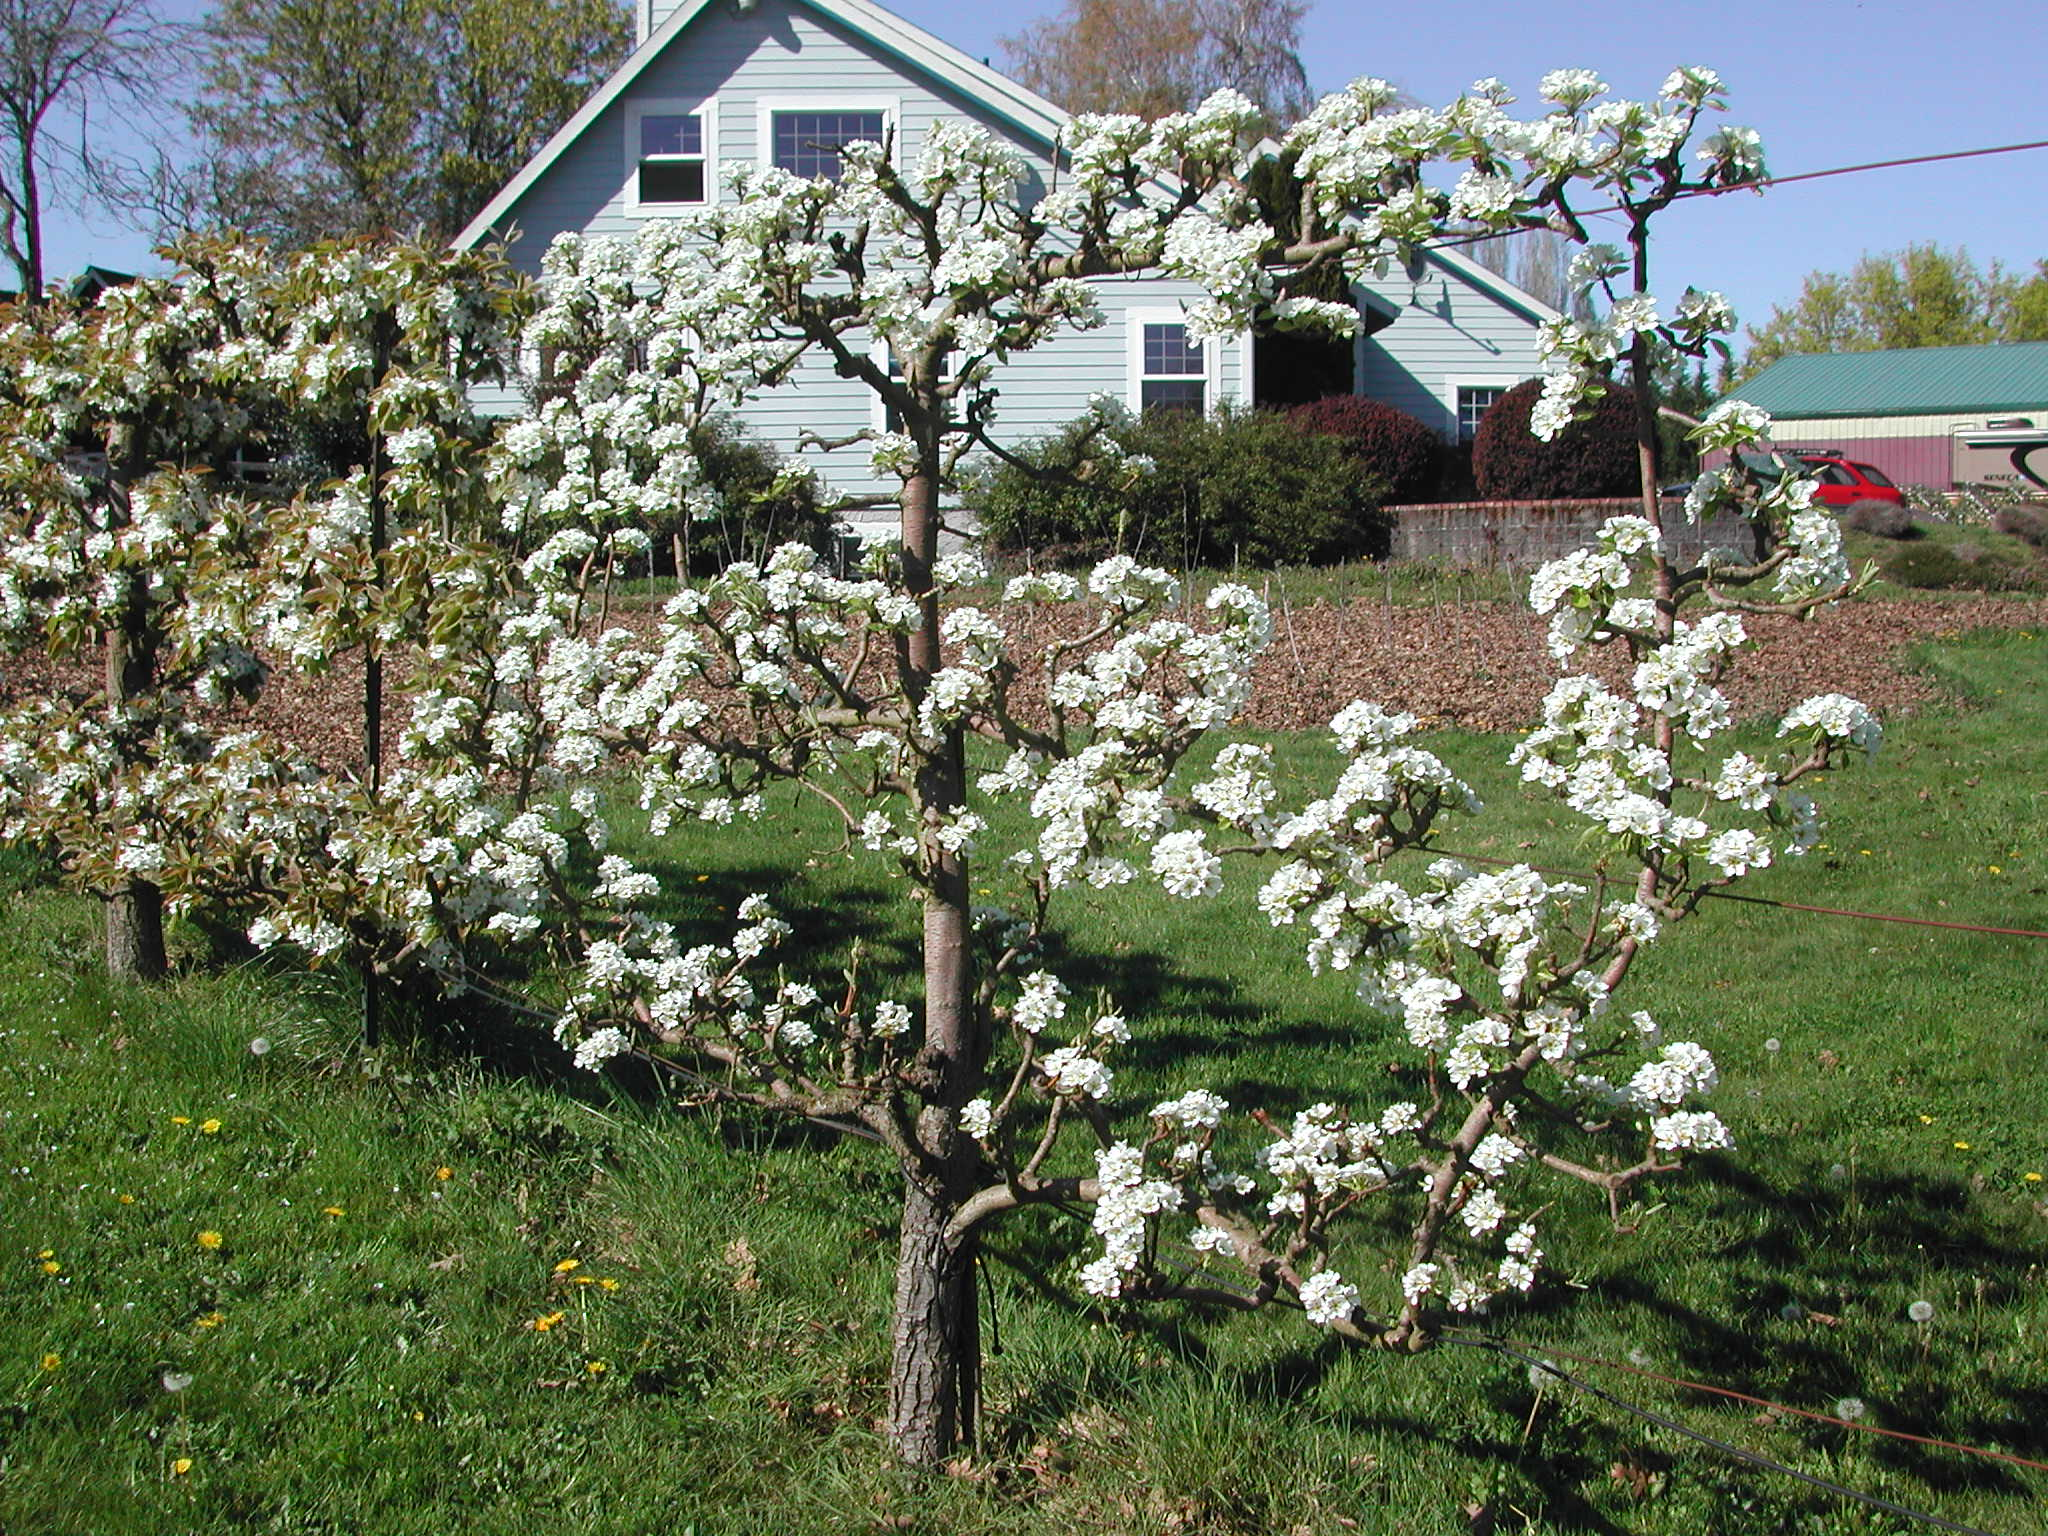 Our largest Asian pear tree in bloom